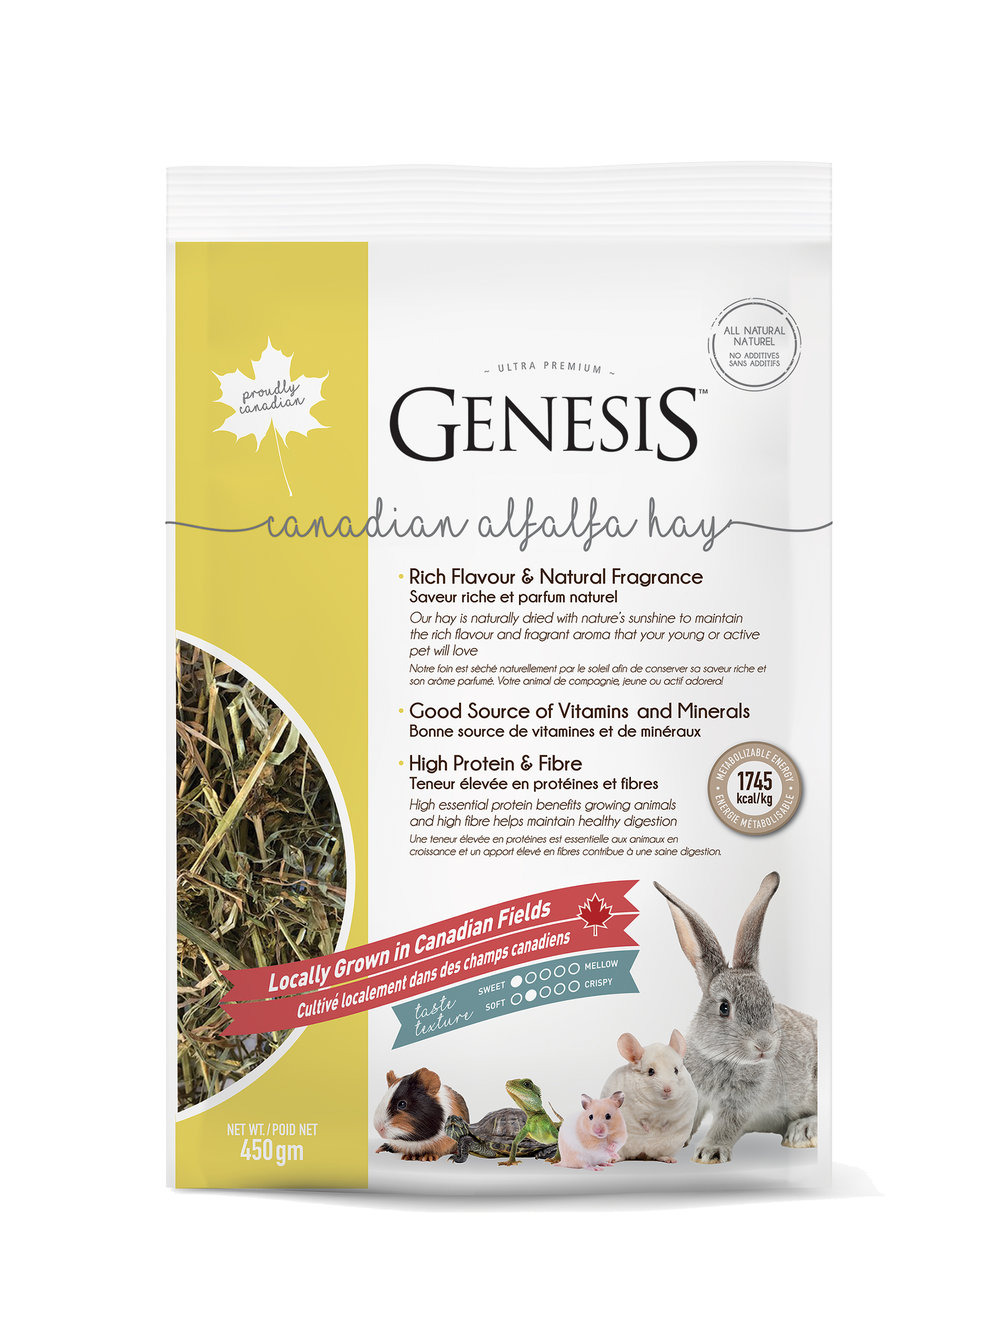 Genesis Canadian Alfalfa Hay - Packed full of nutrition with high protein, high fibre and concentrated sources of essential vitamins and minerals.